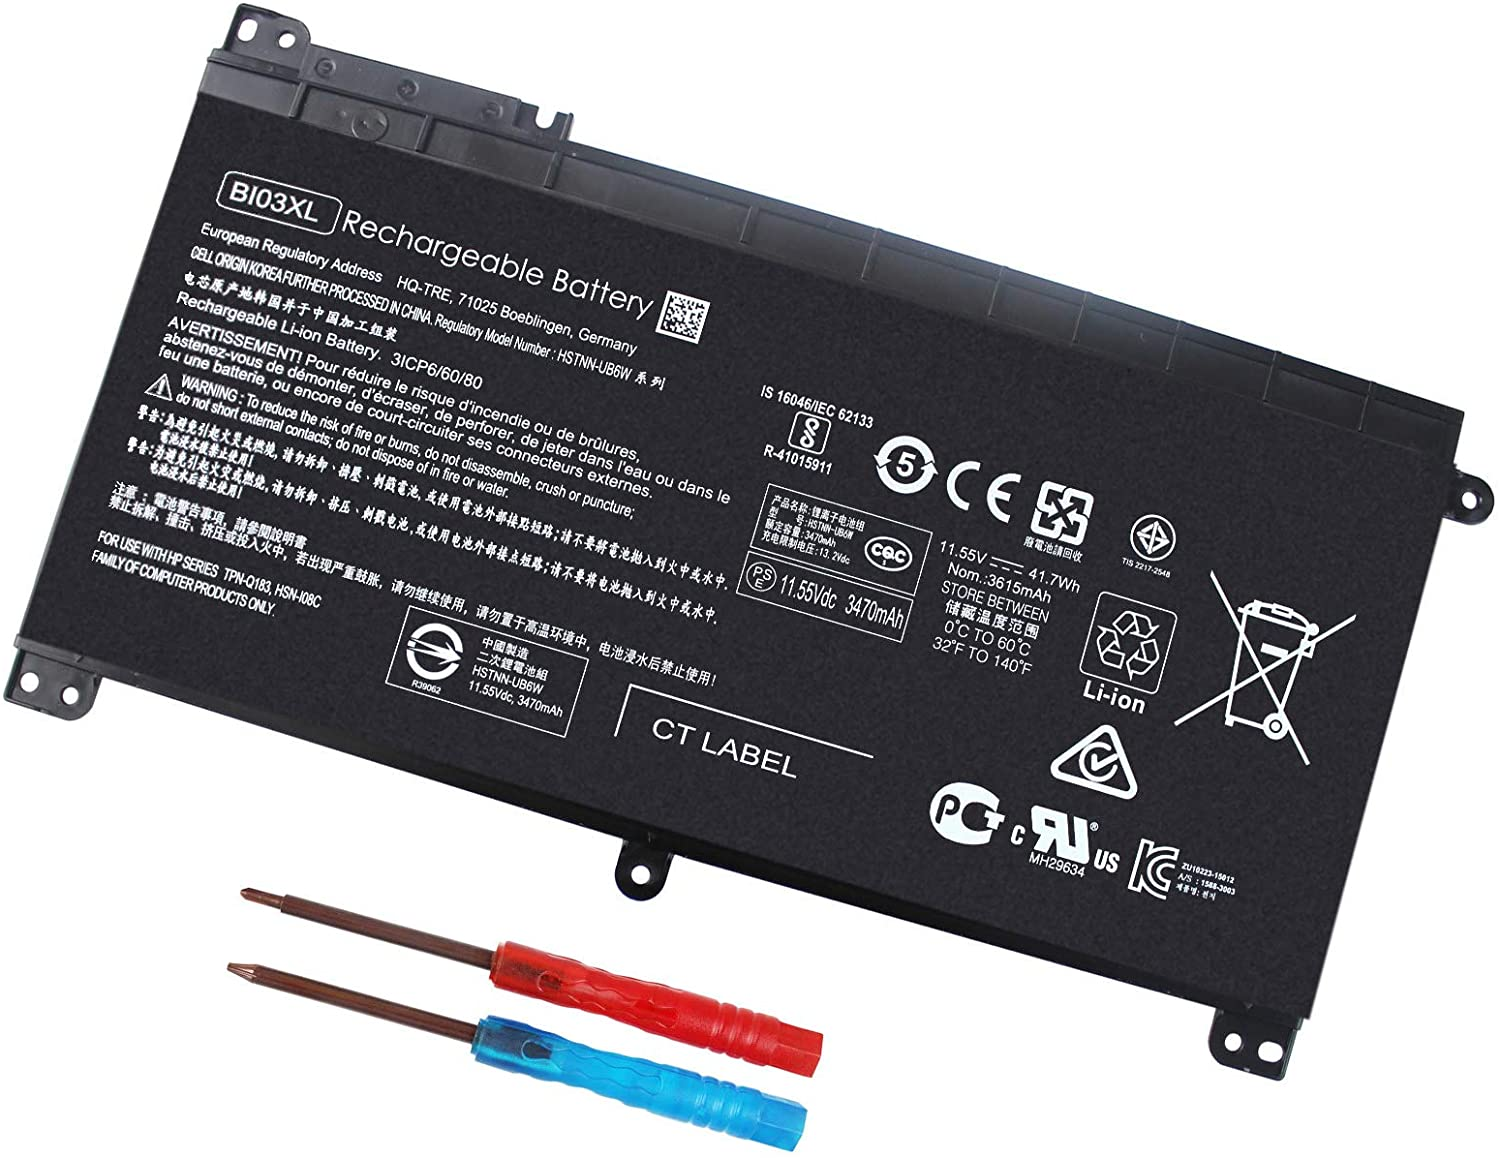 BI03XL ON03XL 844203-850 844203-855 Laptop Battery for HP Pavilion X360 13-U M3-U m3-u001dx m3-u103dx 13-u003la Stream 14-AX 14-ax010wm 14-ax020wm 14-ax030wm 14-ax040wm 915230-541 - 12 Months Warranty